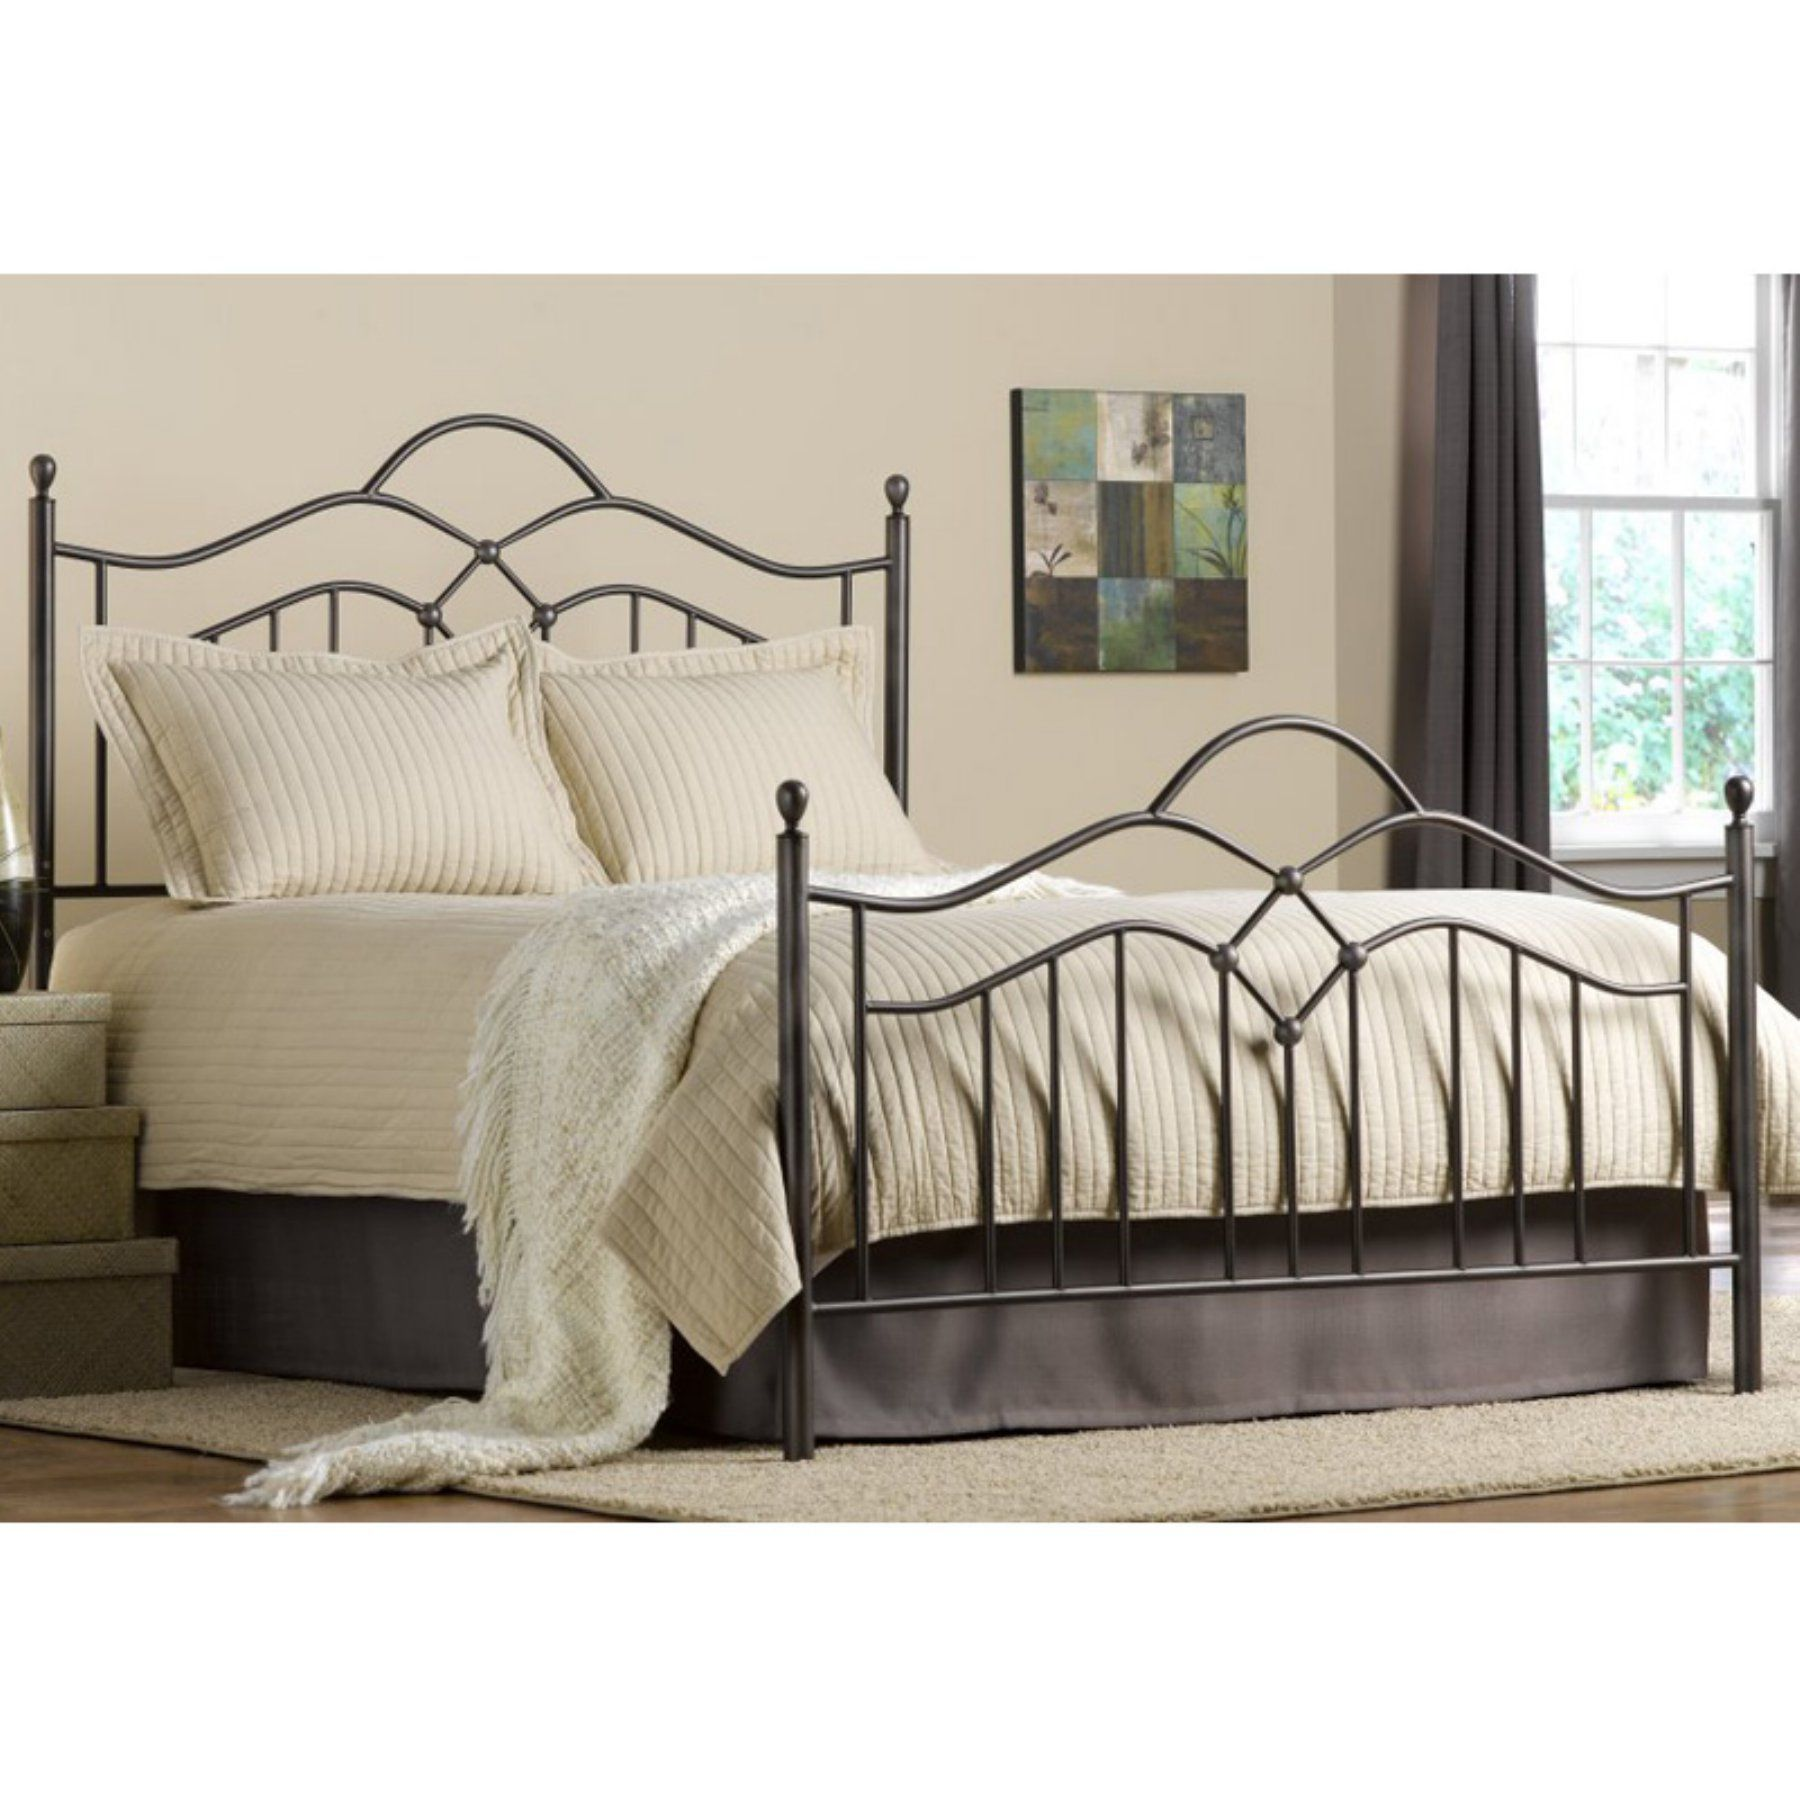 Hillsdale Oklahoma Metal Bed Full bedding sets, Queen